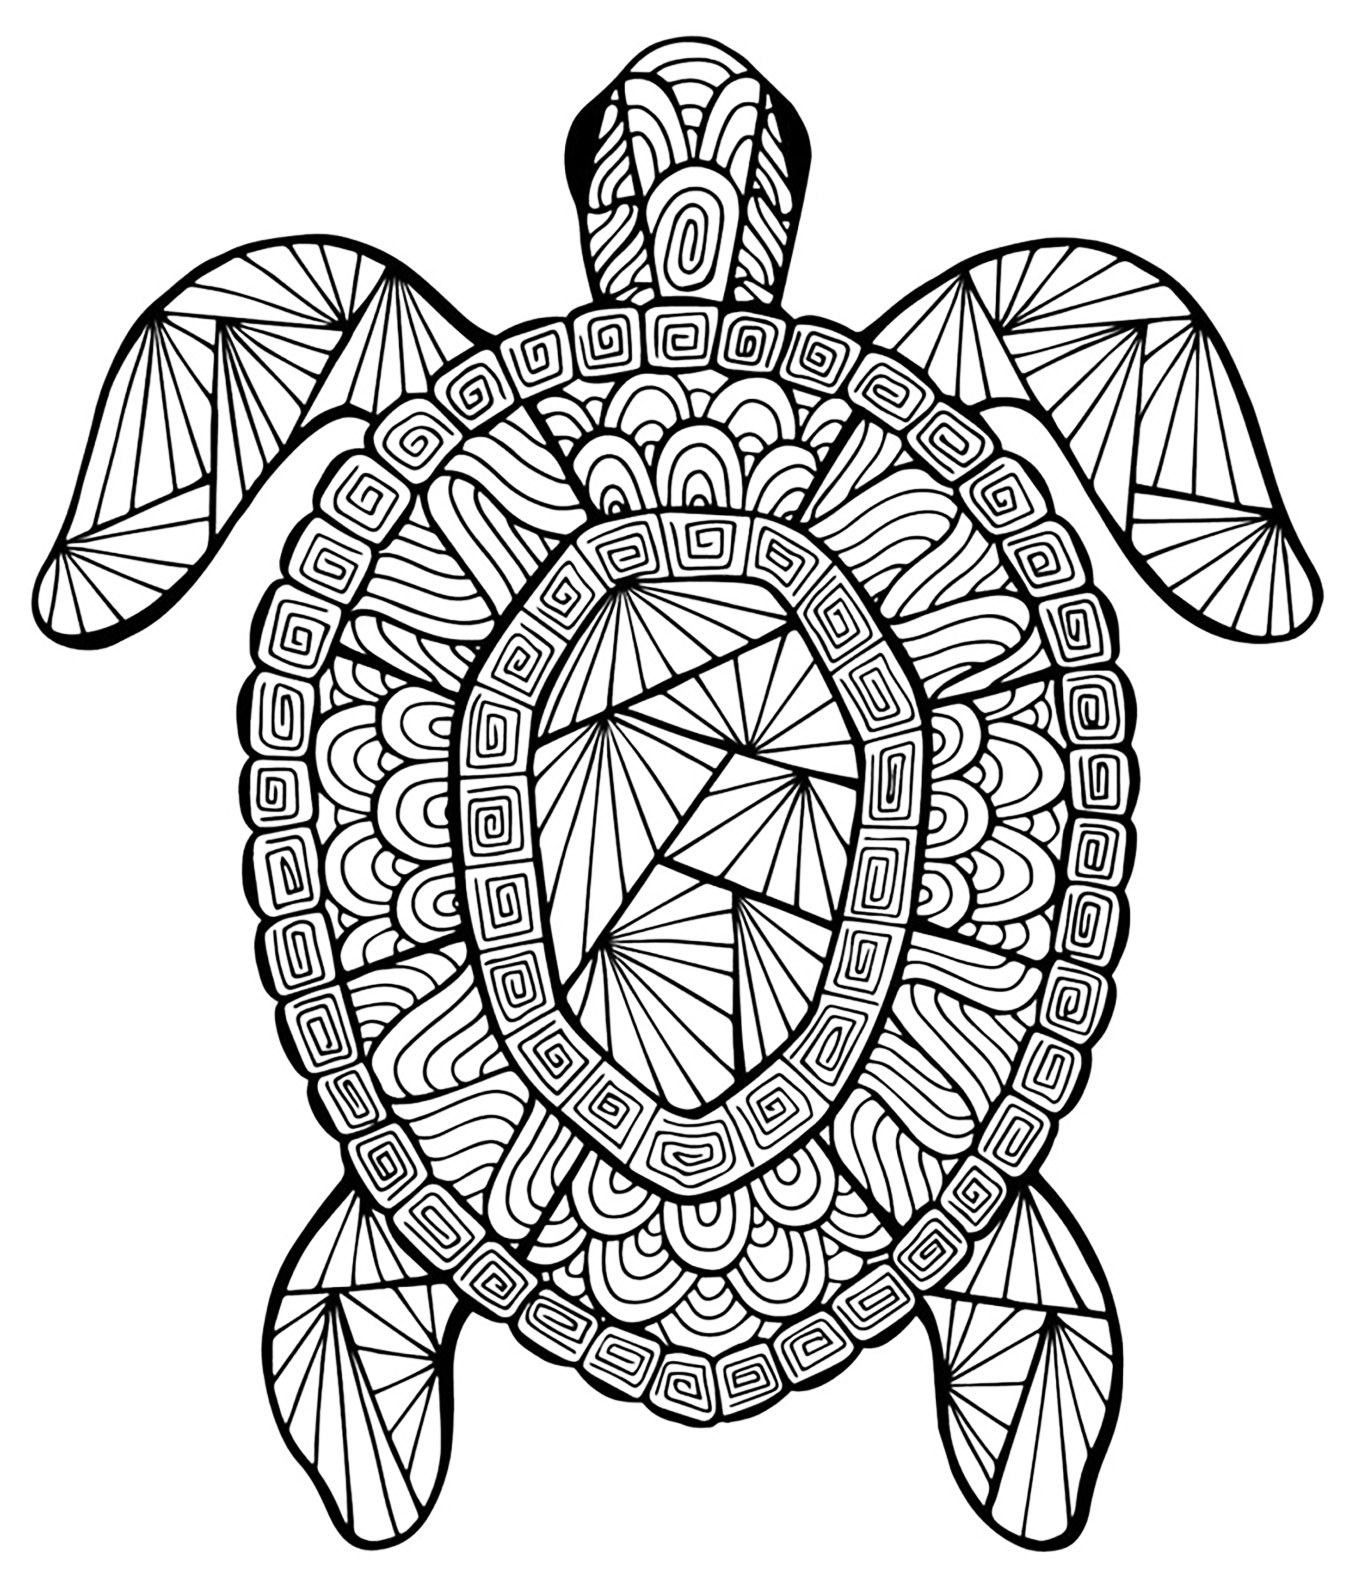 turtle coloring pages for adults Incredible turtle   Turtles Adult Coloring Pages turtle coloring pages for adults